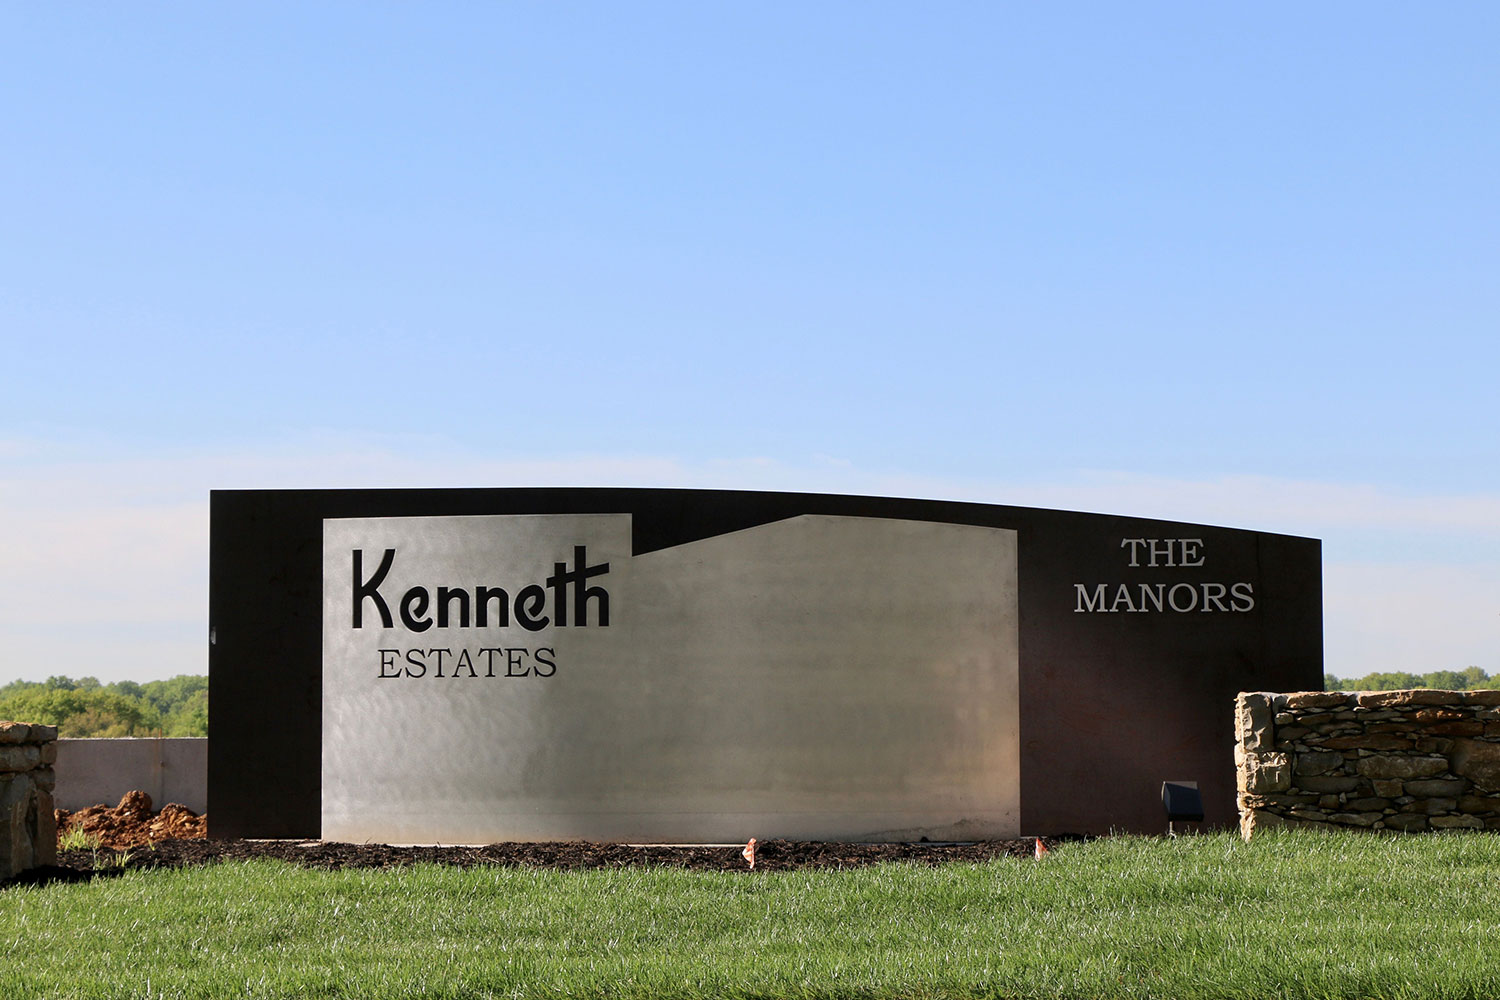 Kenneth-Estates-themanors-entry-monument